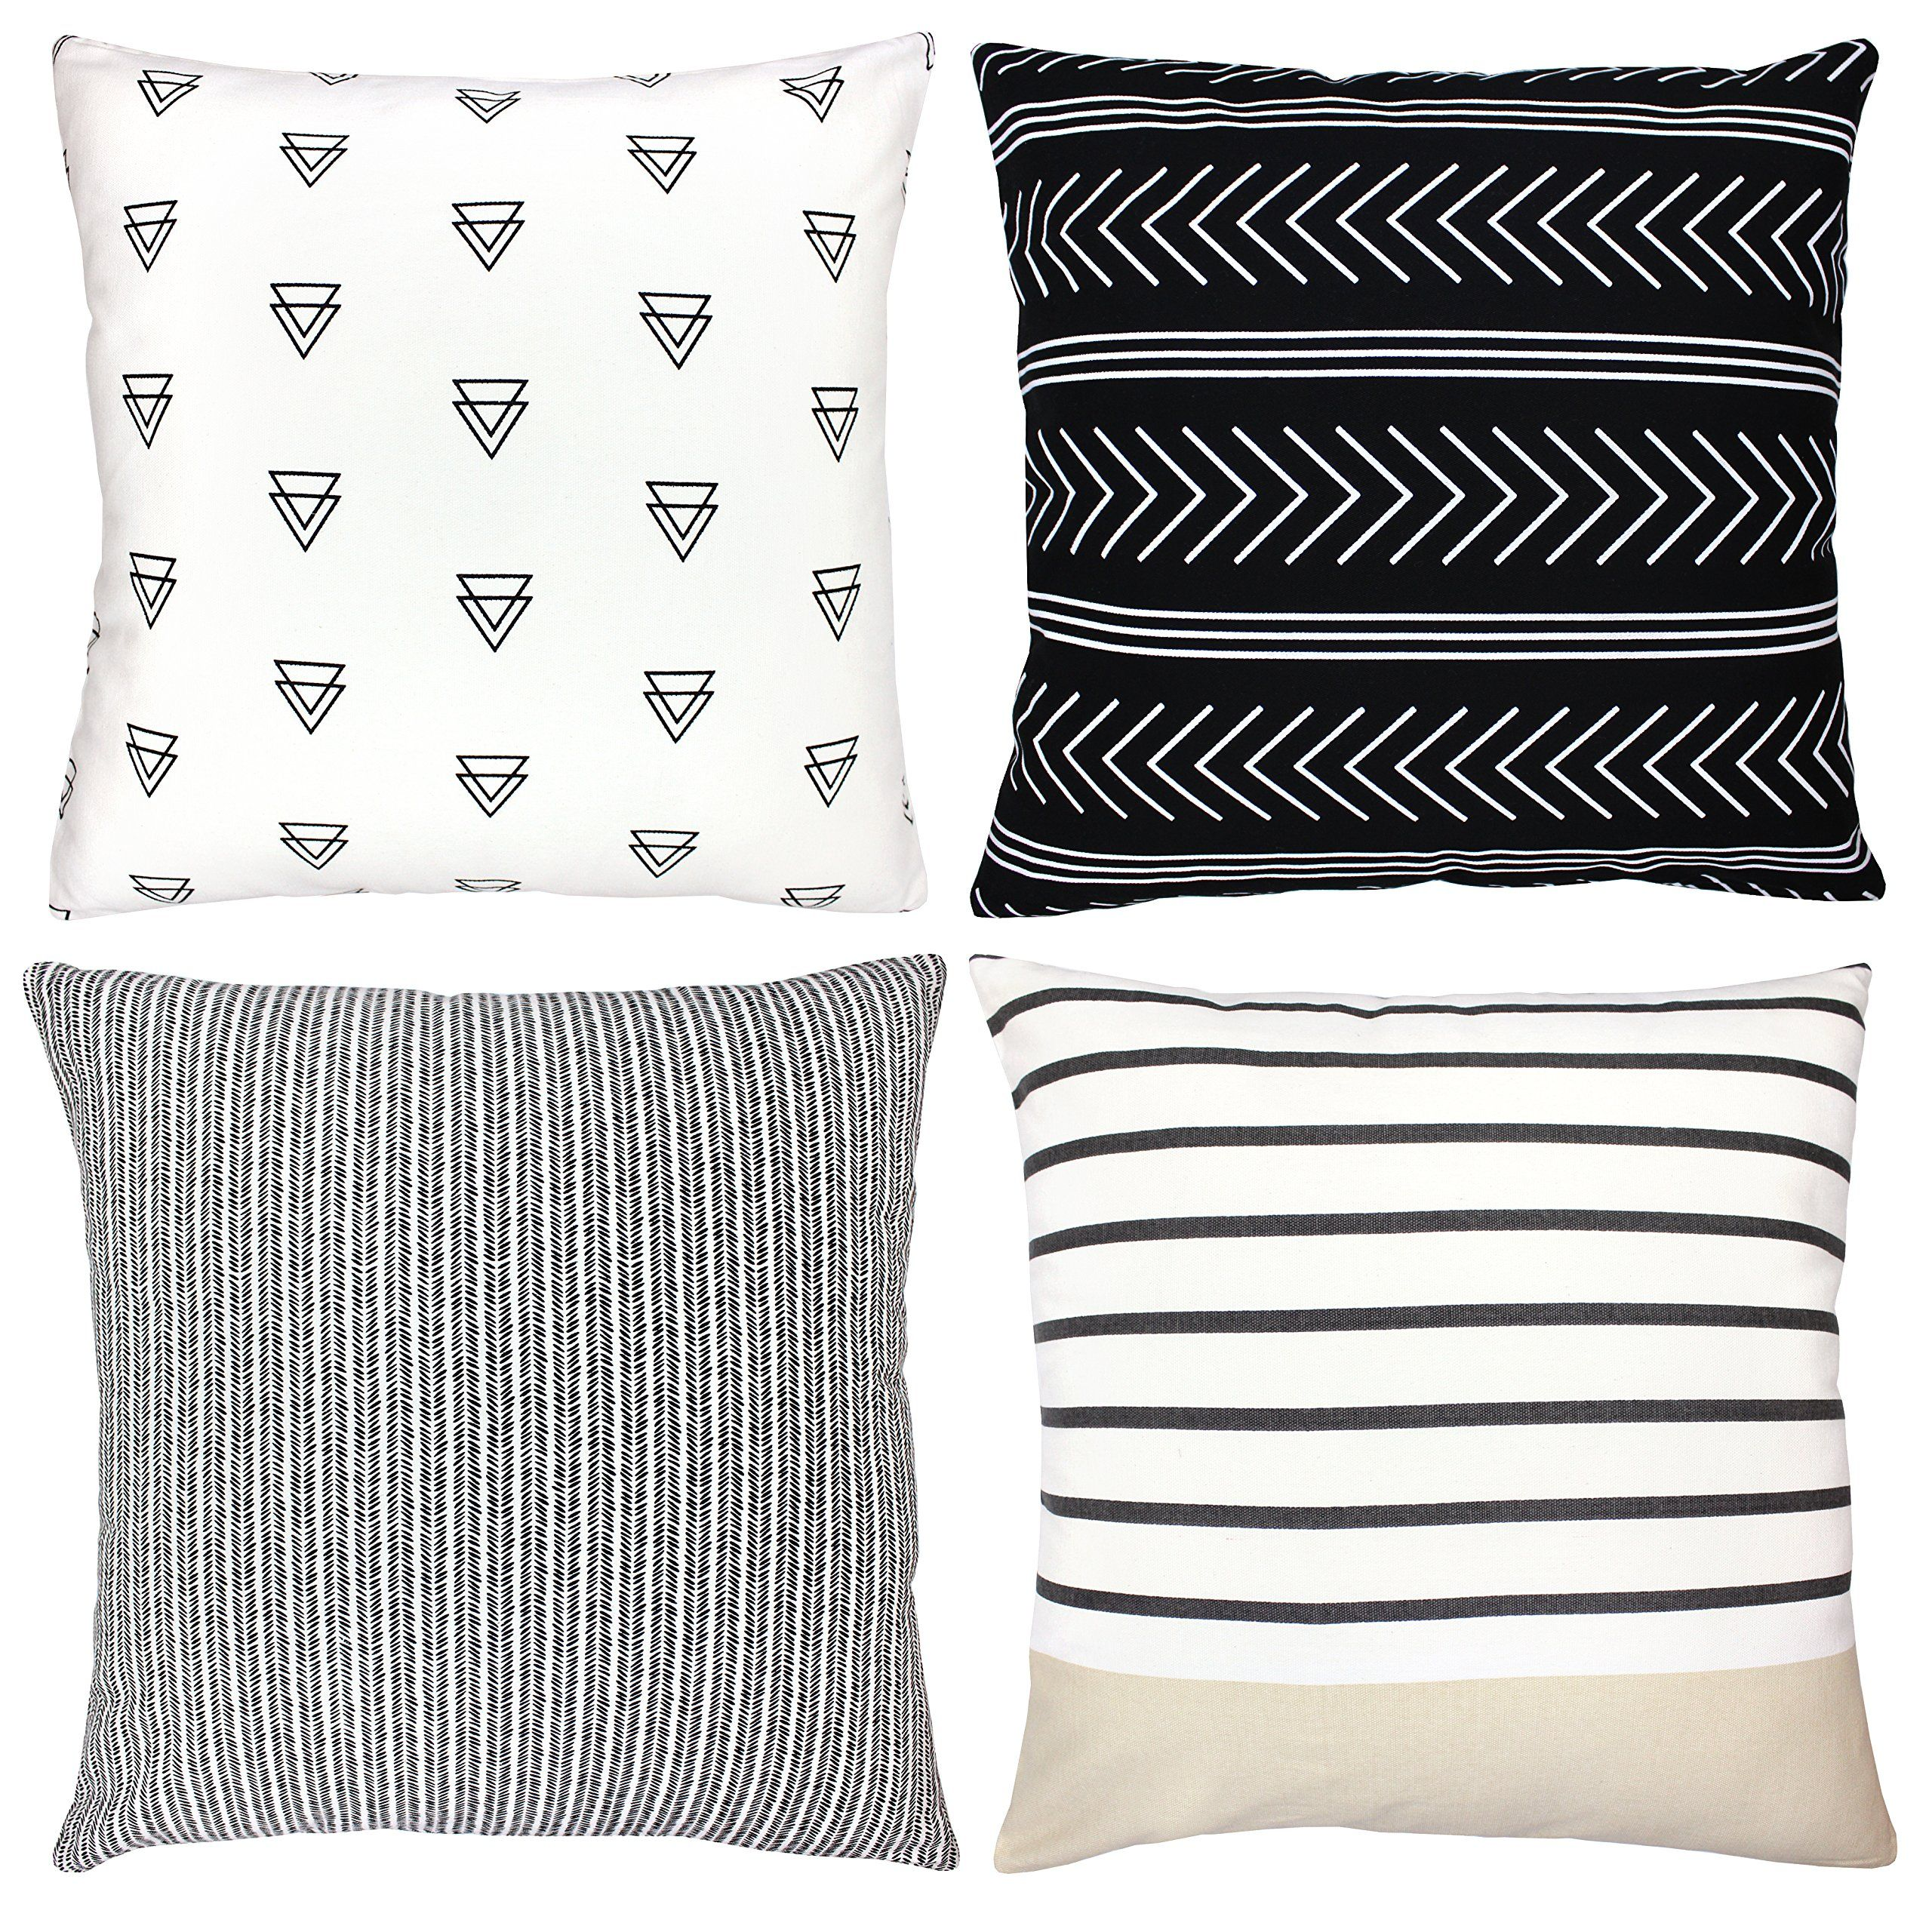 Decorative Throw Pillow Covers For Couch, Sofa, Or Bed Set